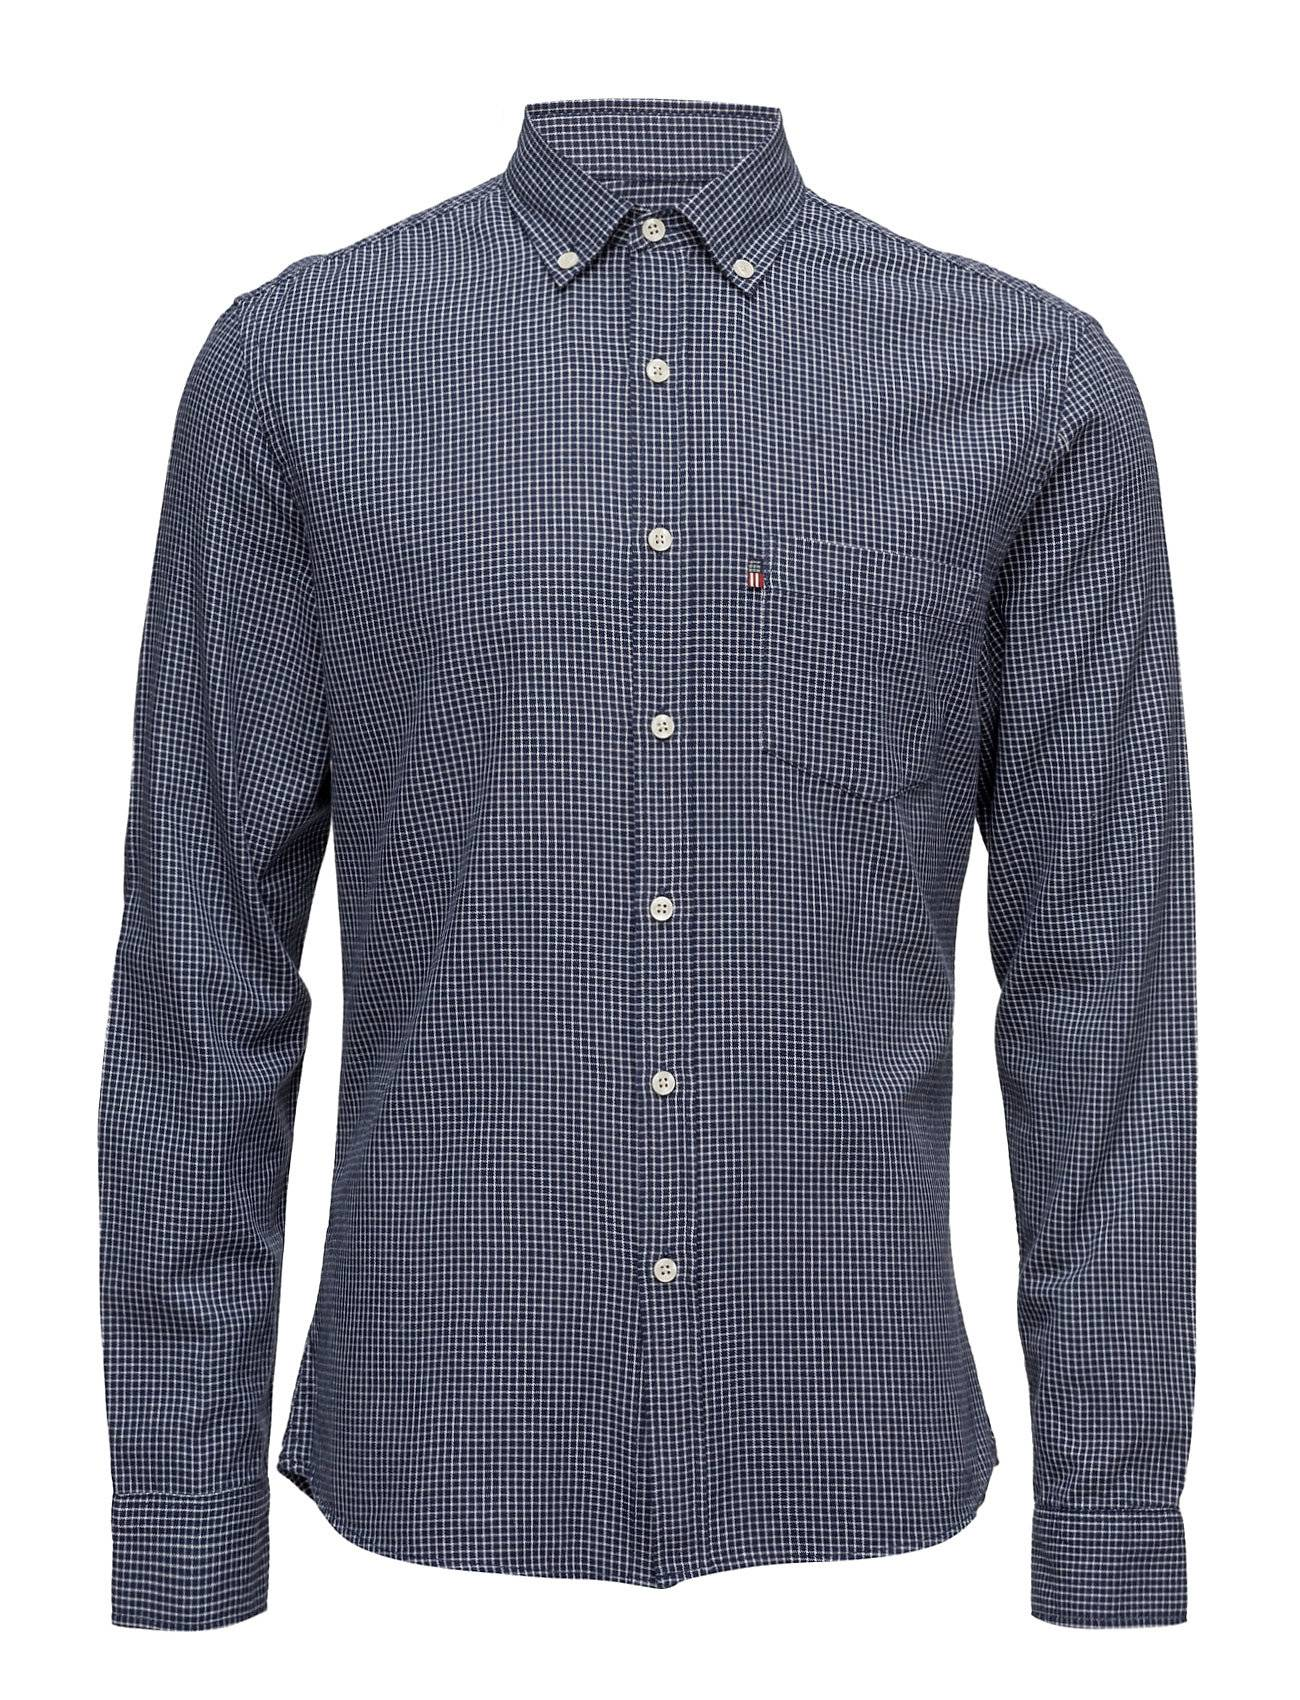 Lexington Clothing Peter Lt Flannel Shirt